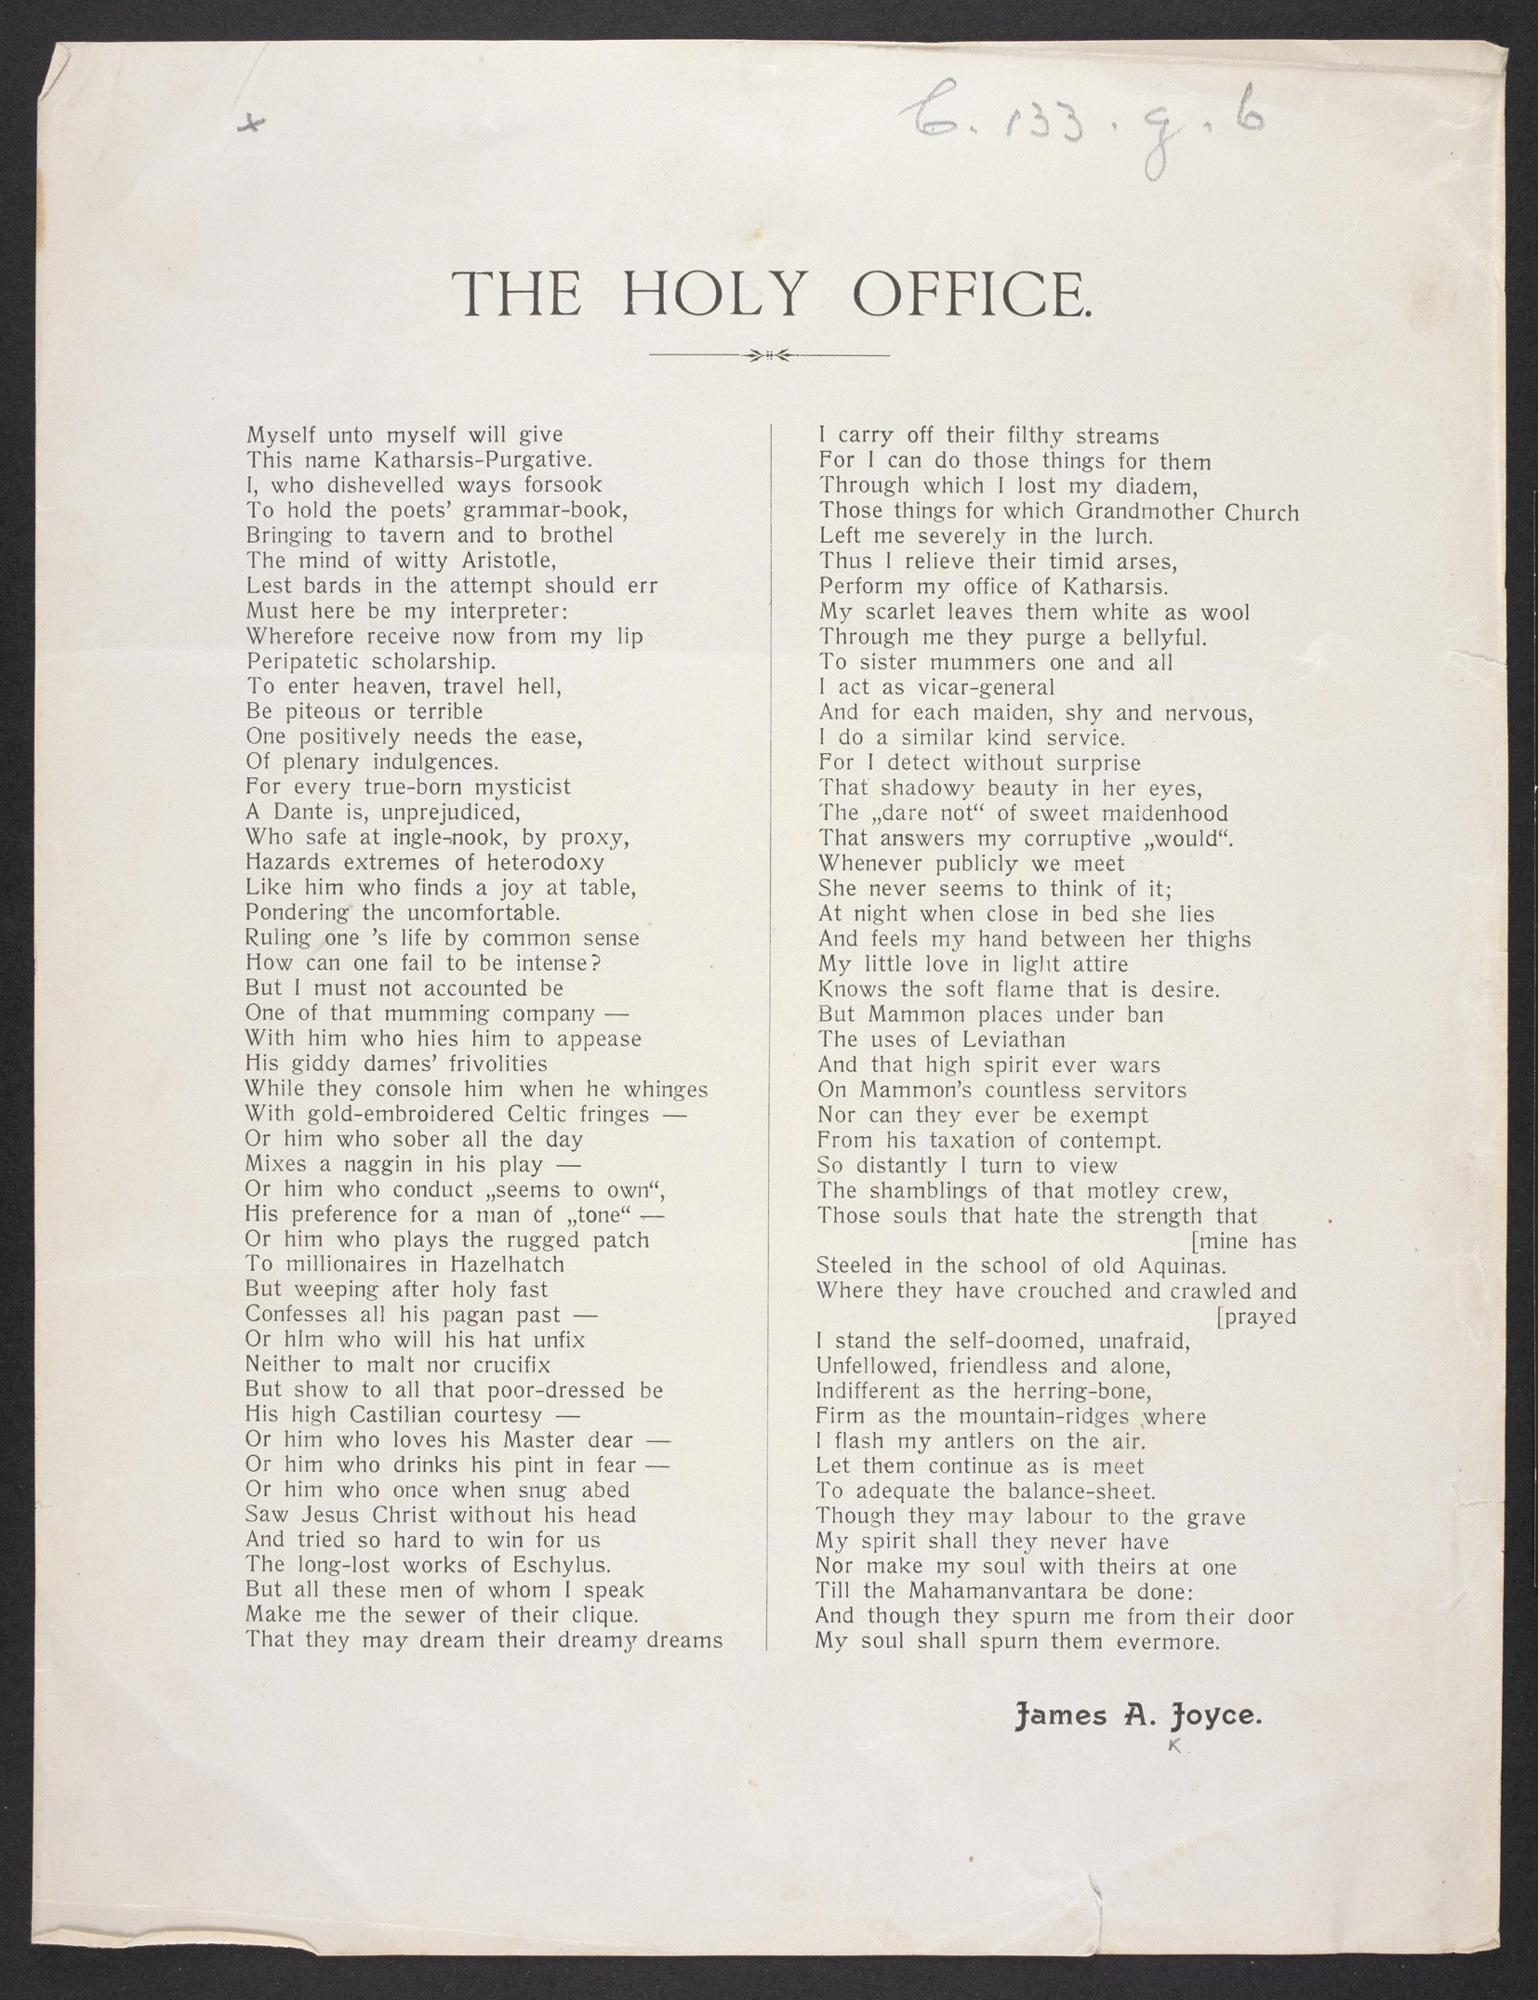 'The Holy Office', a poem by James Joyce